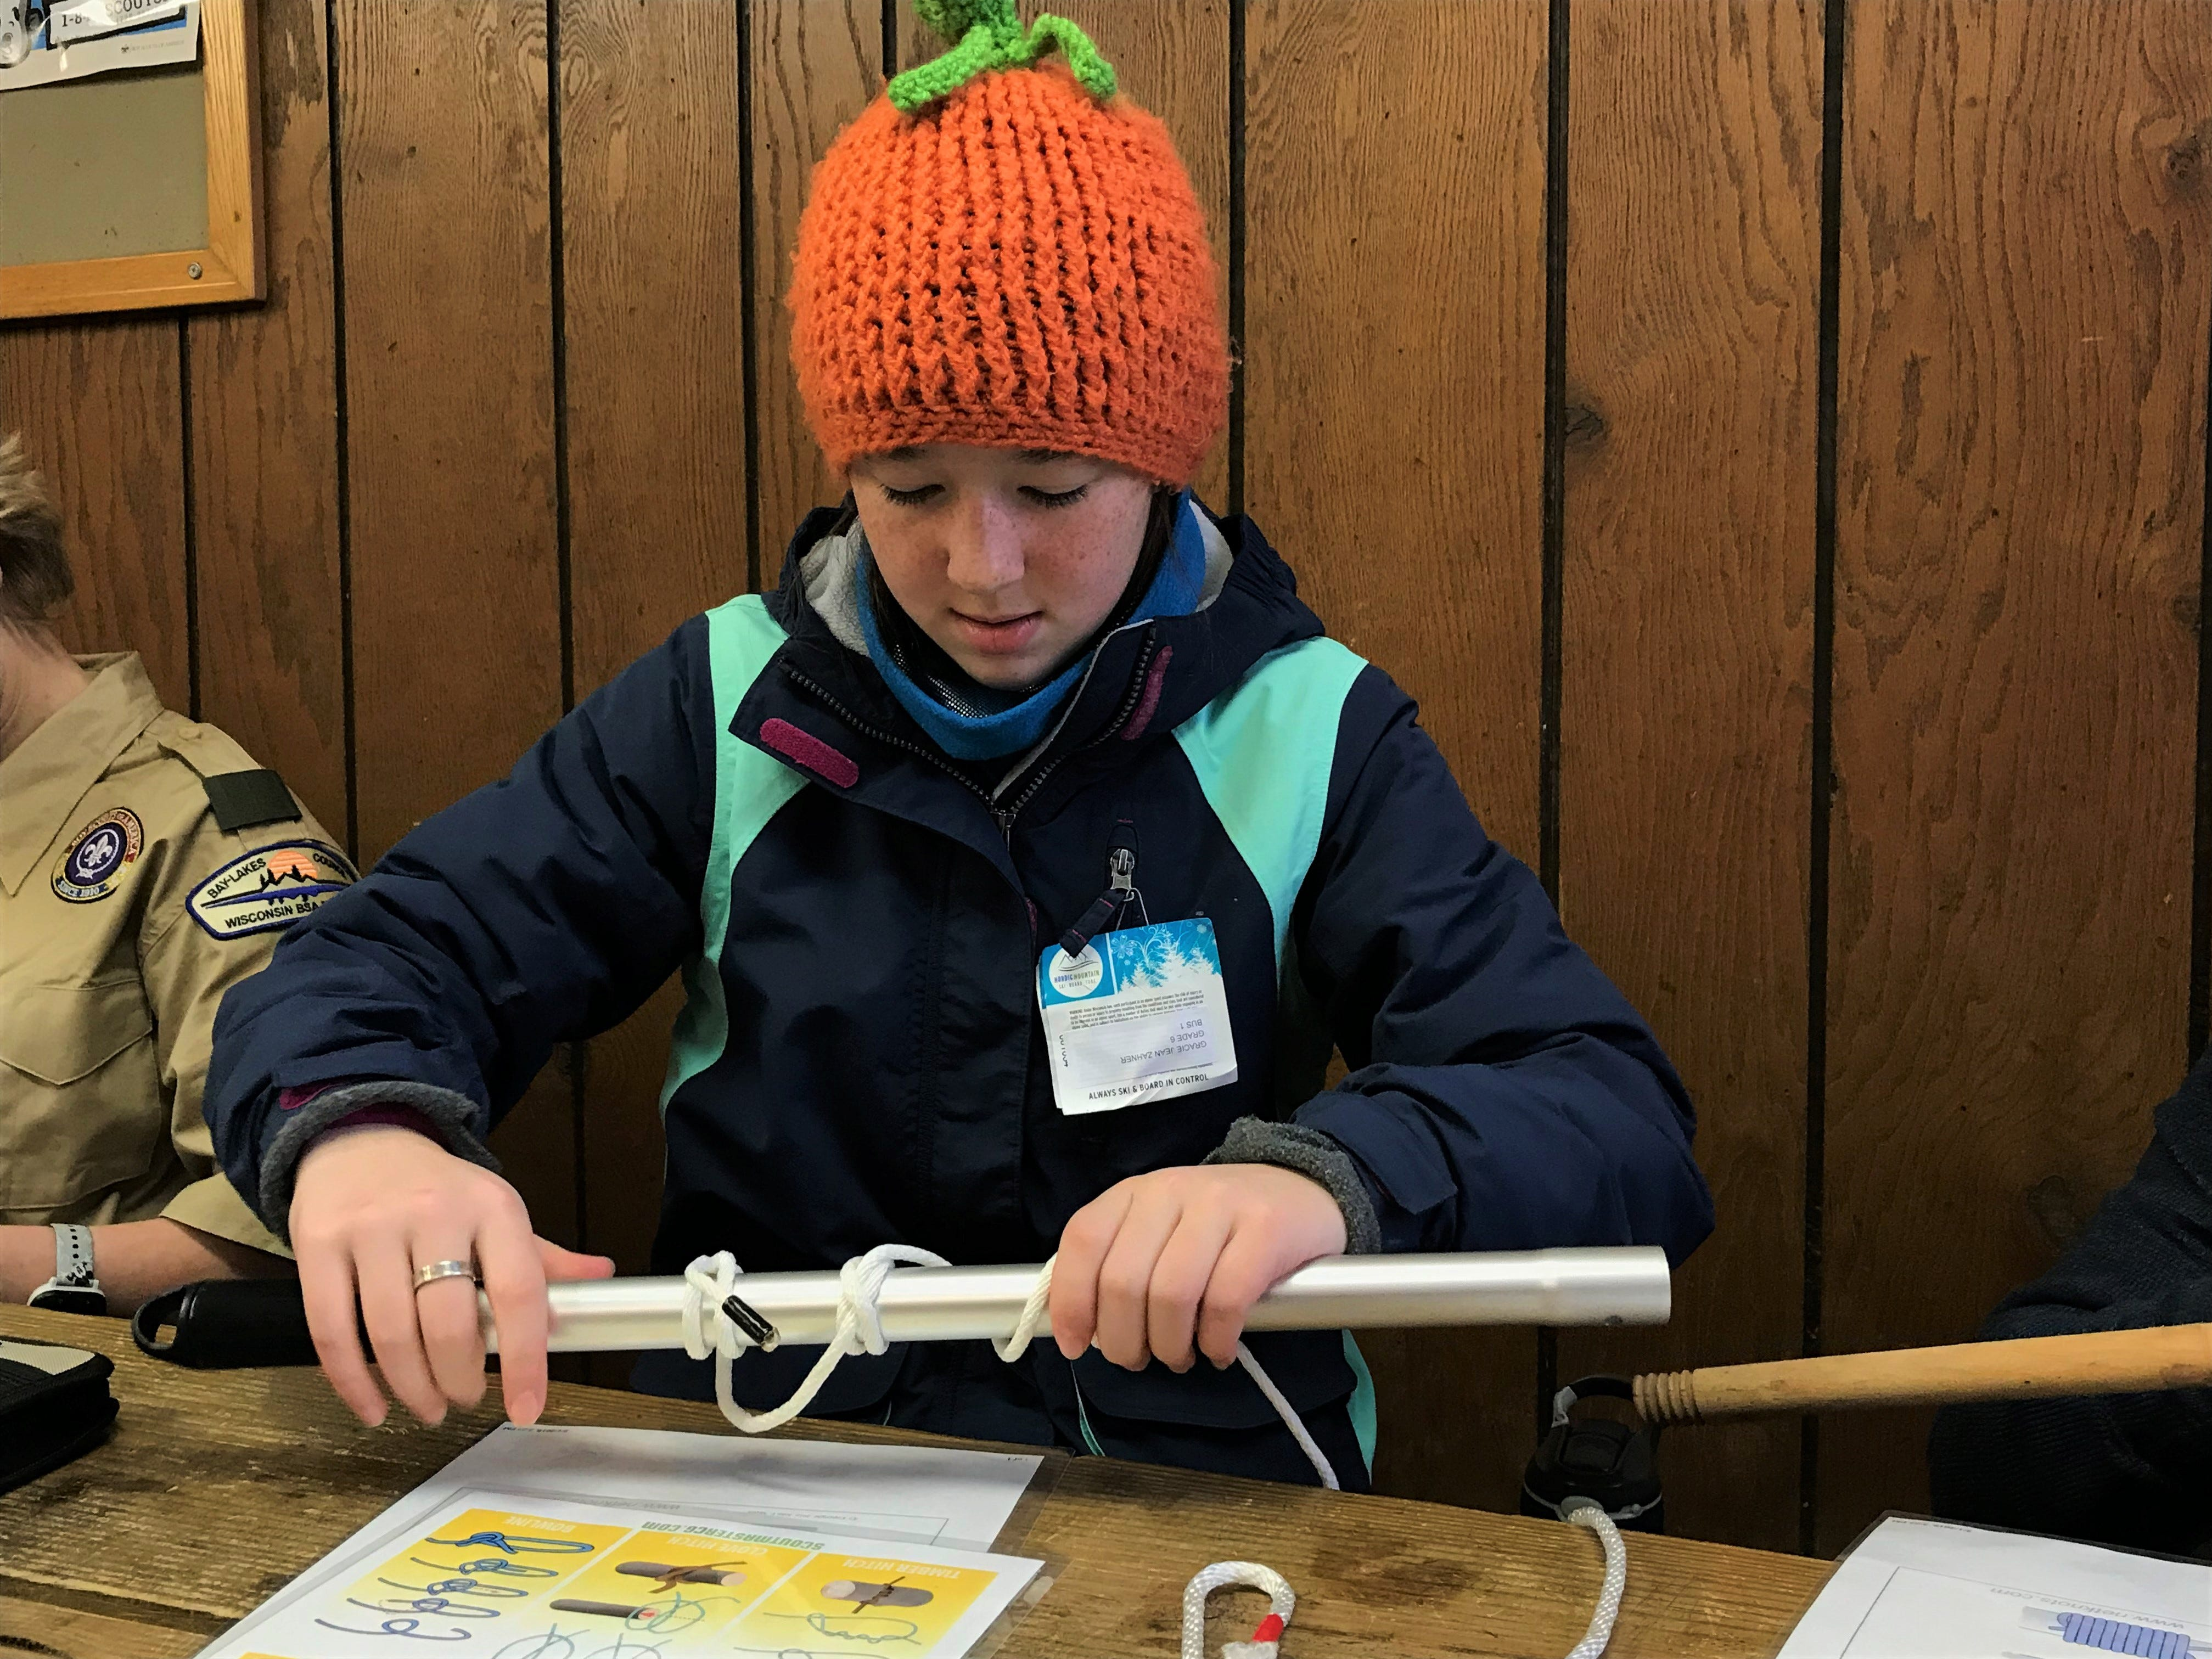 Gracie-Jean, 12 of Oshkosh perfects her Clove hitch on Saturday, Feb. 2 at Camp Rokilio as part of Scouts BSA.